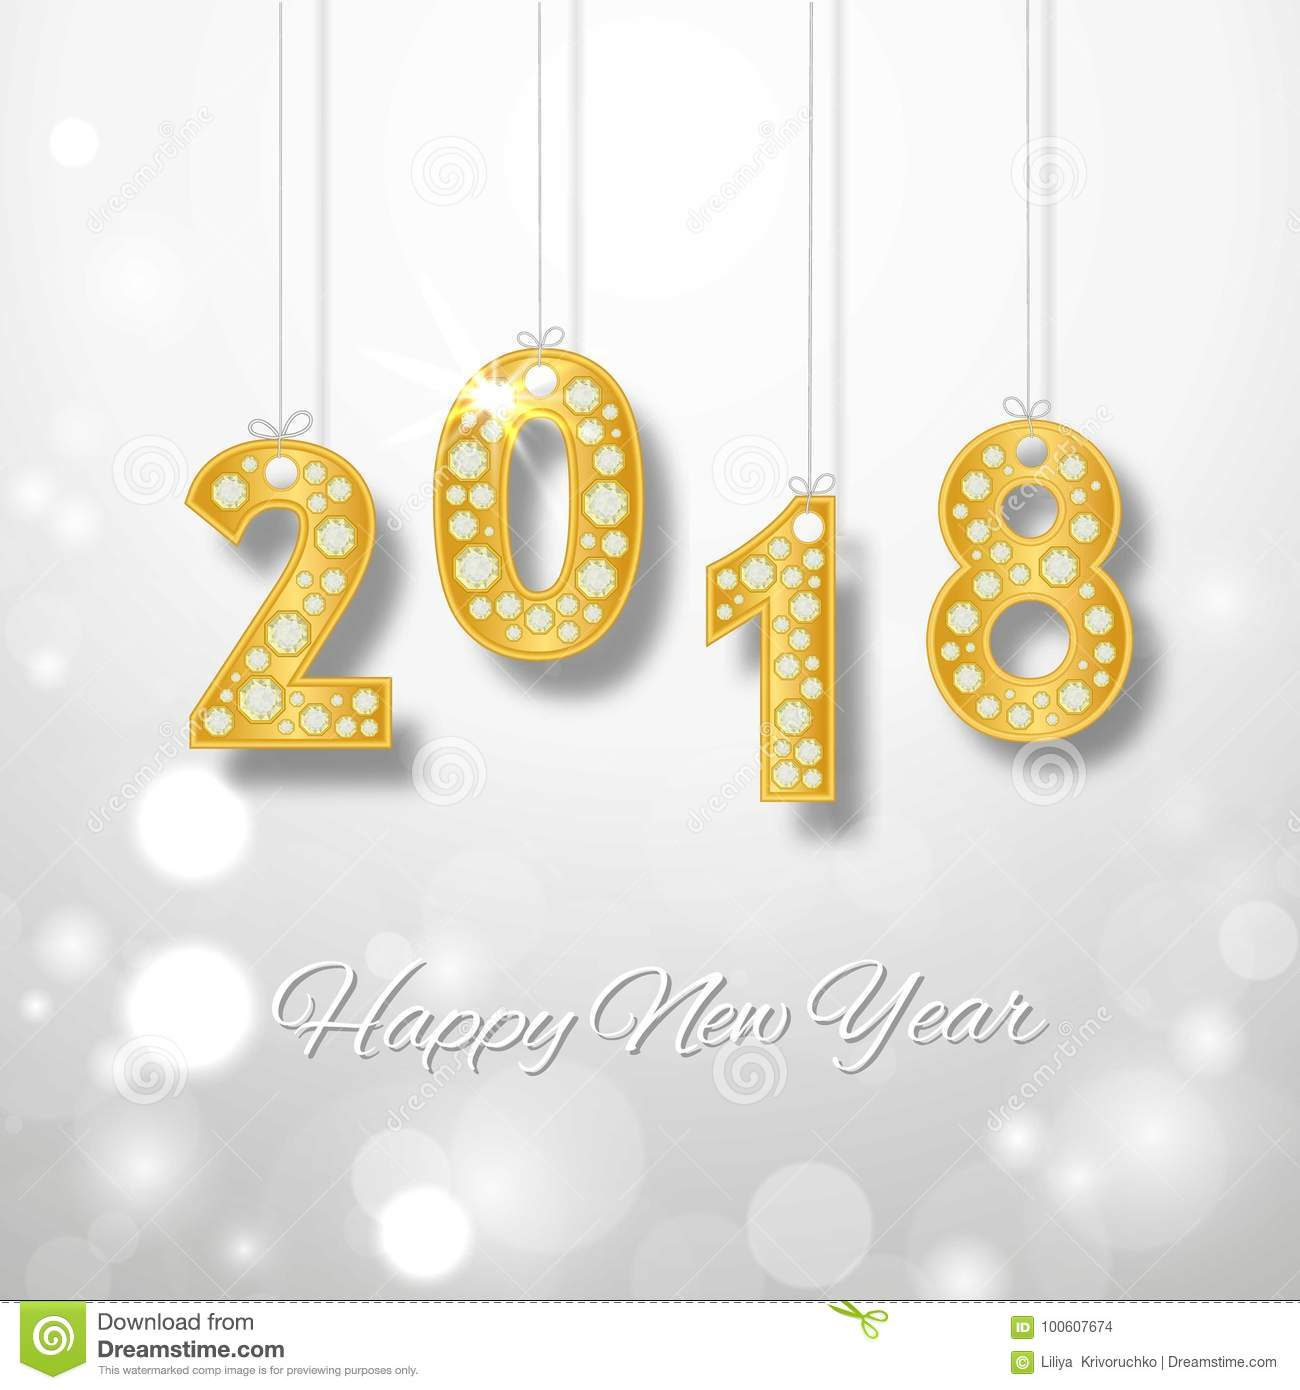 happy new year 2018 greeting card design with golden number and diamonds